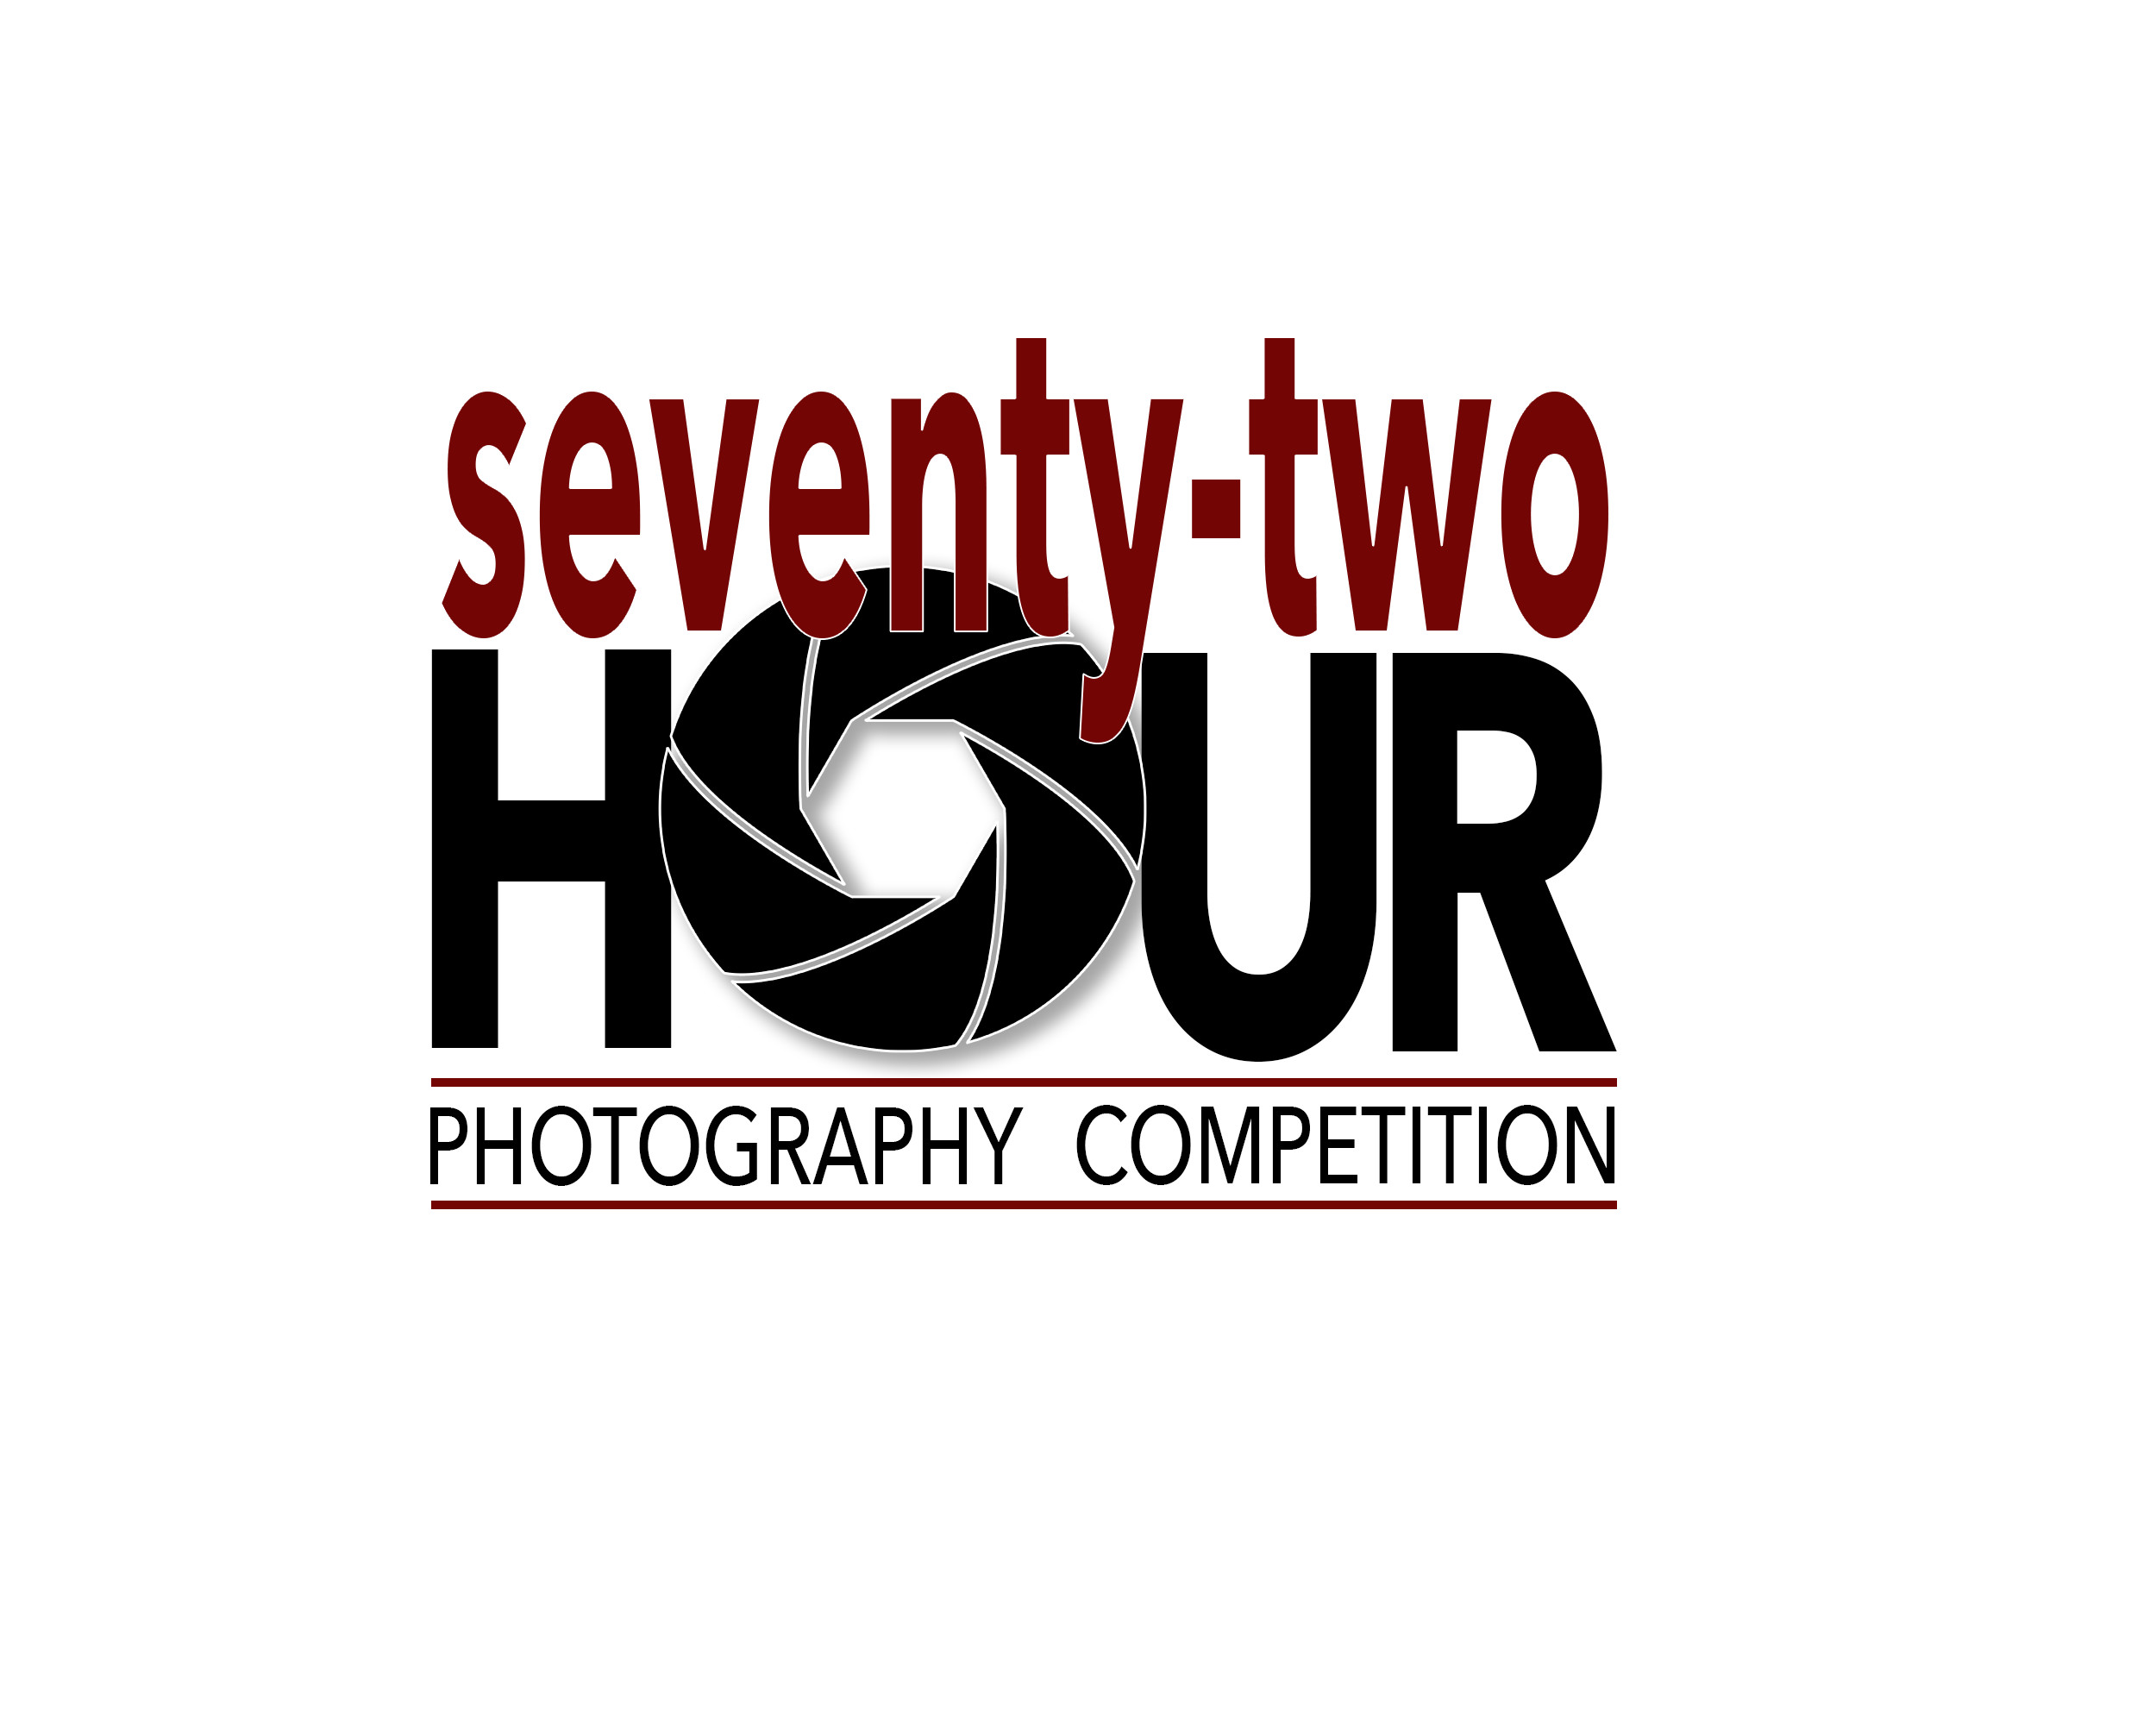 72-Hour Photography Competition